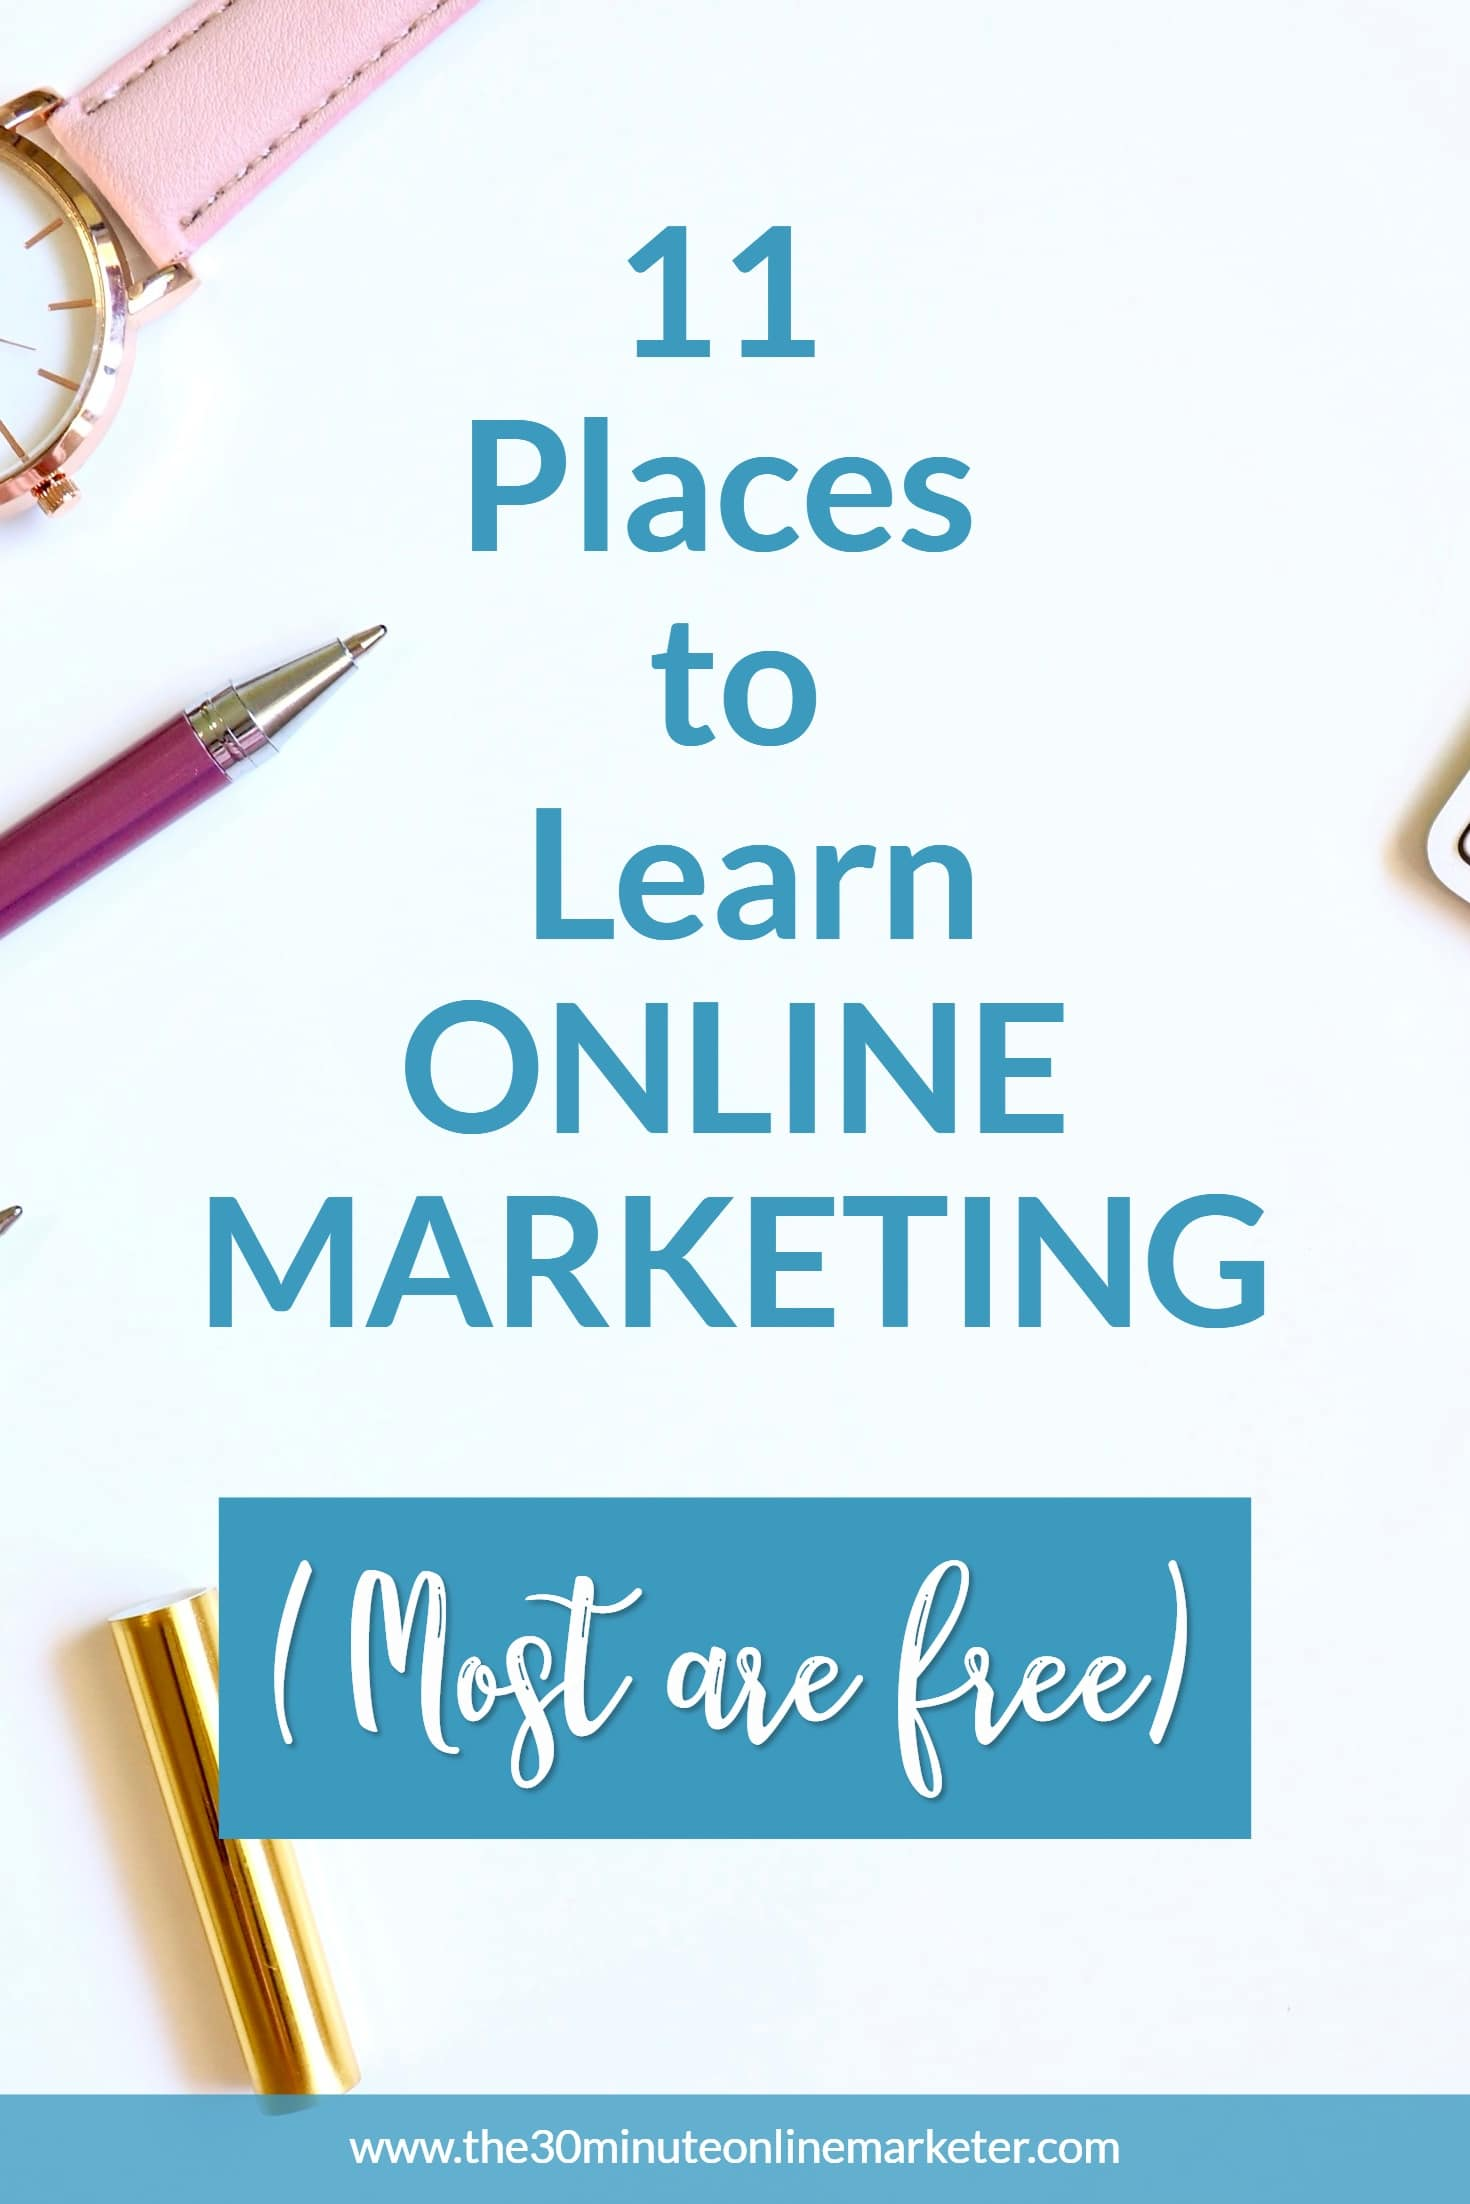 If you need help to promote your business and don't know where to find the best resources, check out this list of (mostly free) places where you can learn everything you know to promote your business online. #onlinemarketing #promoteyourbusiness